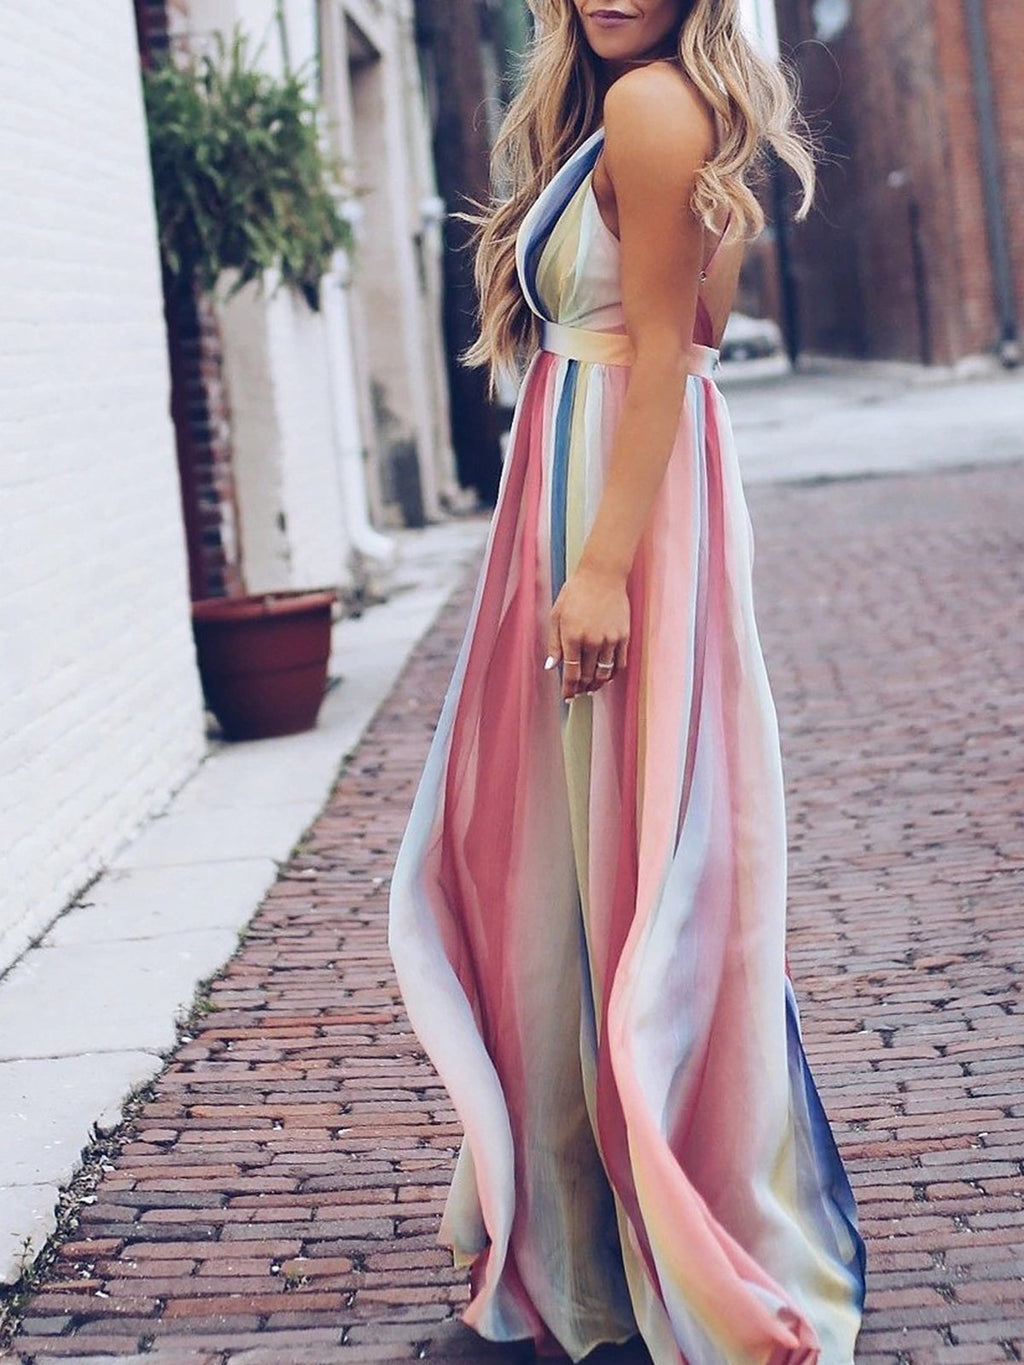 Floral Print Sleeveless Backless Bohemian Sexy Maxi Dress